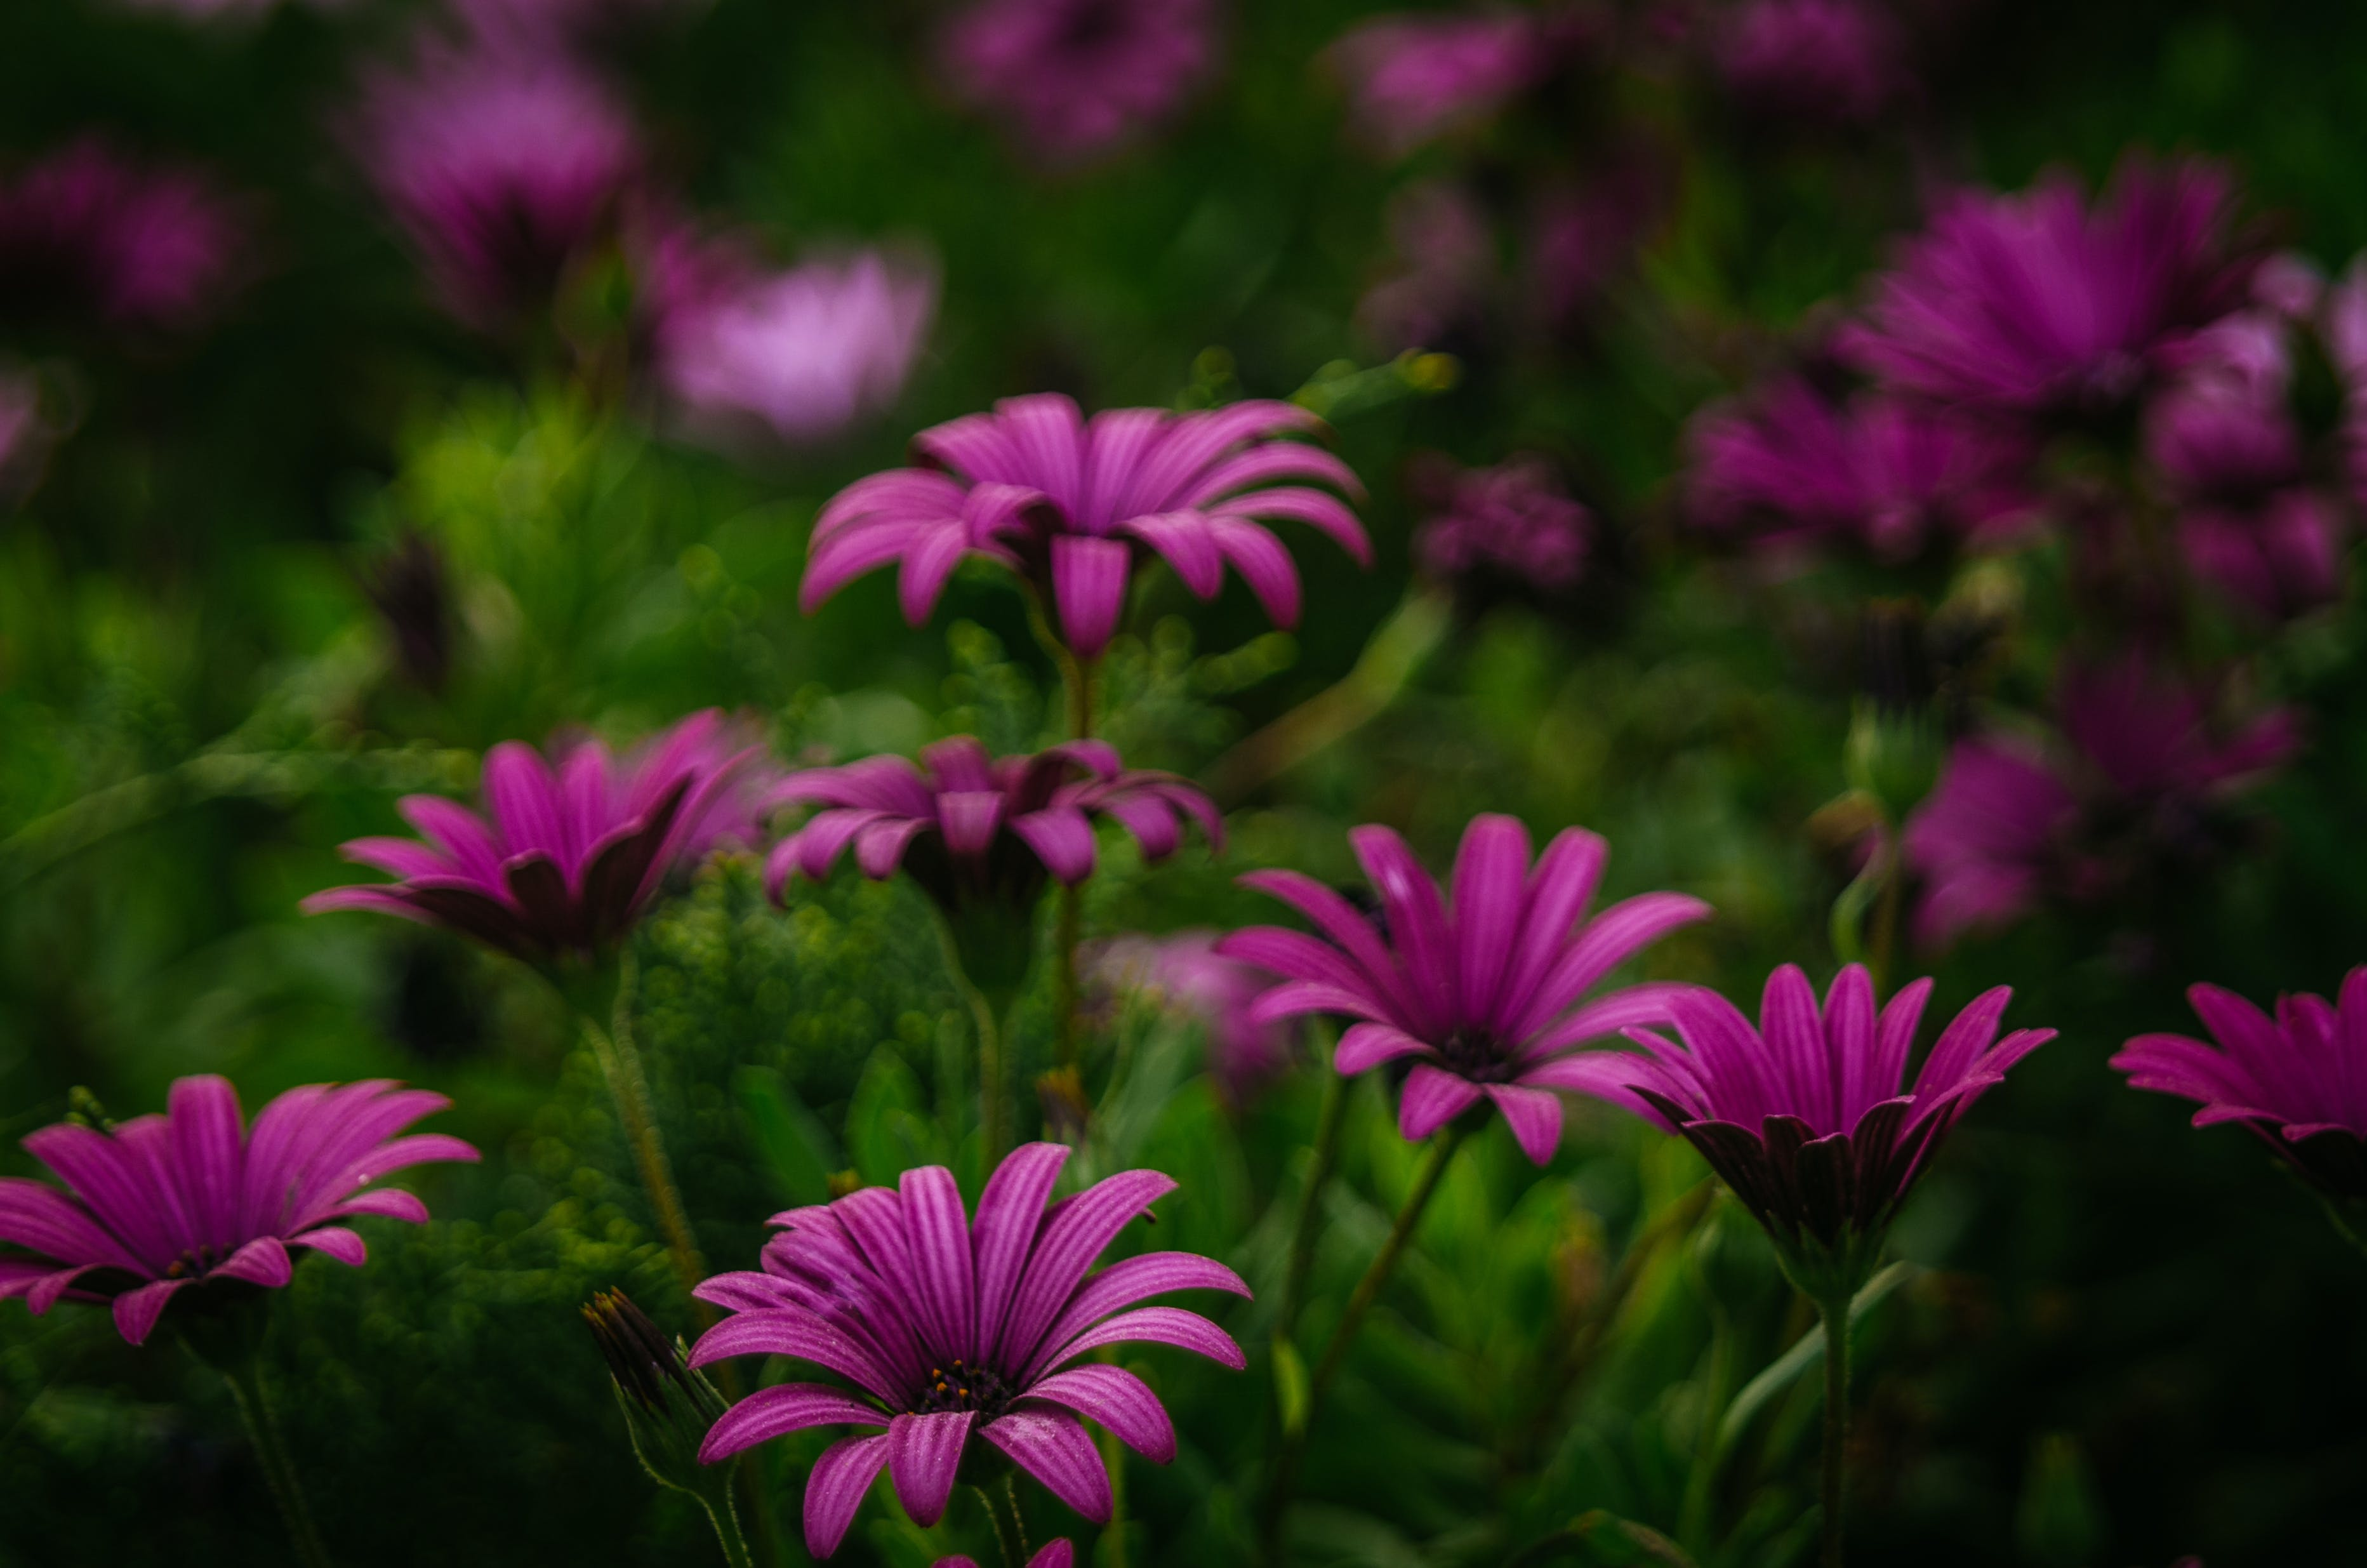 Free stock photo of flowers, purple, green, Israel